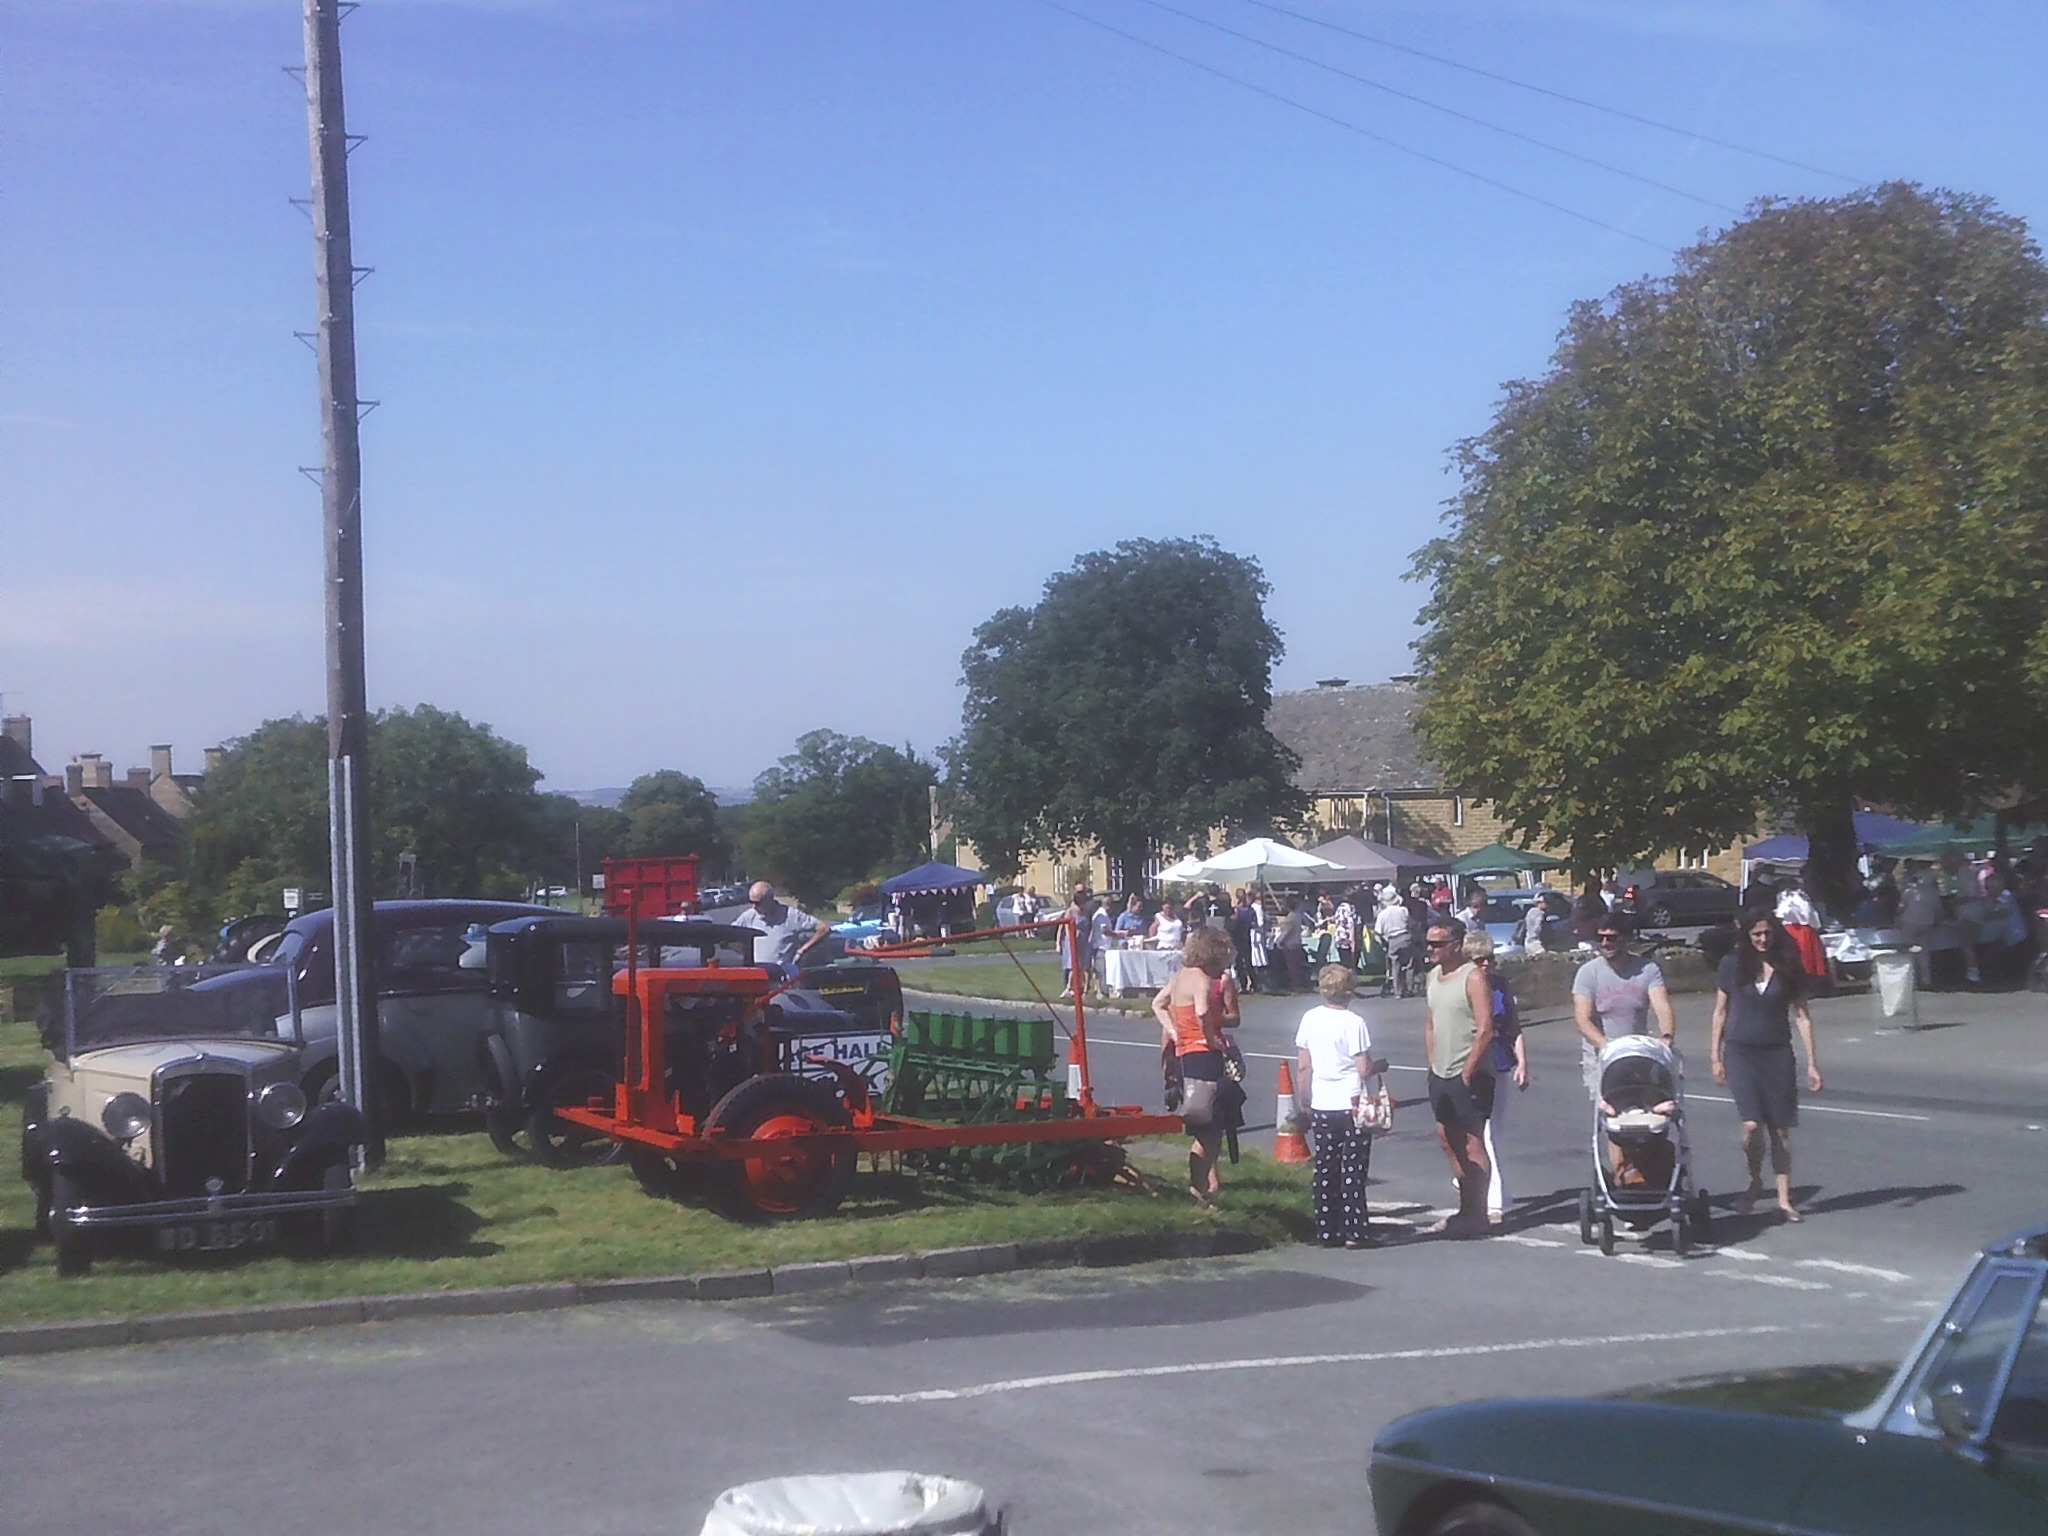 Overall View at the Willersey Show